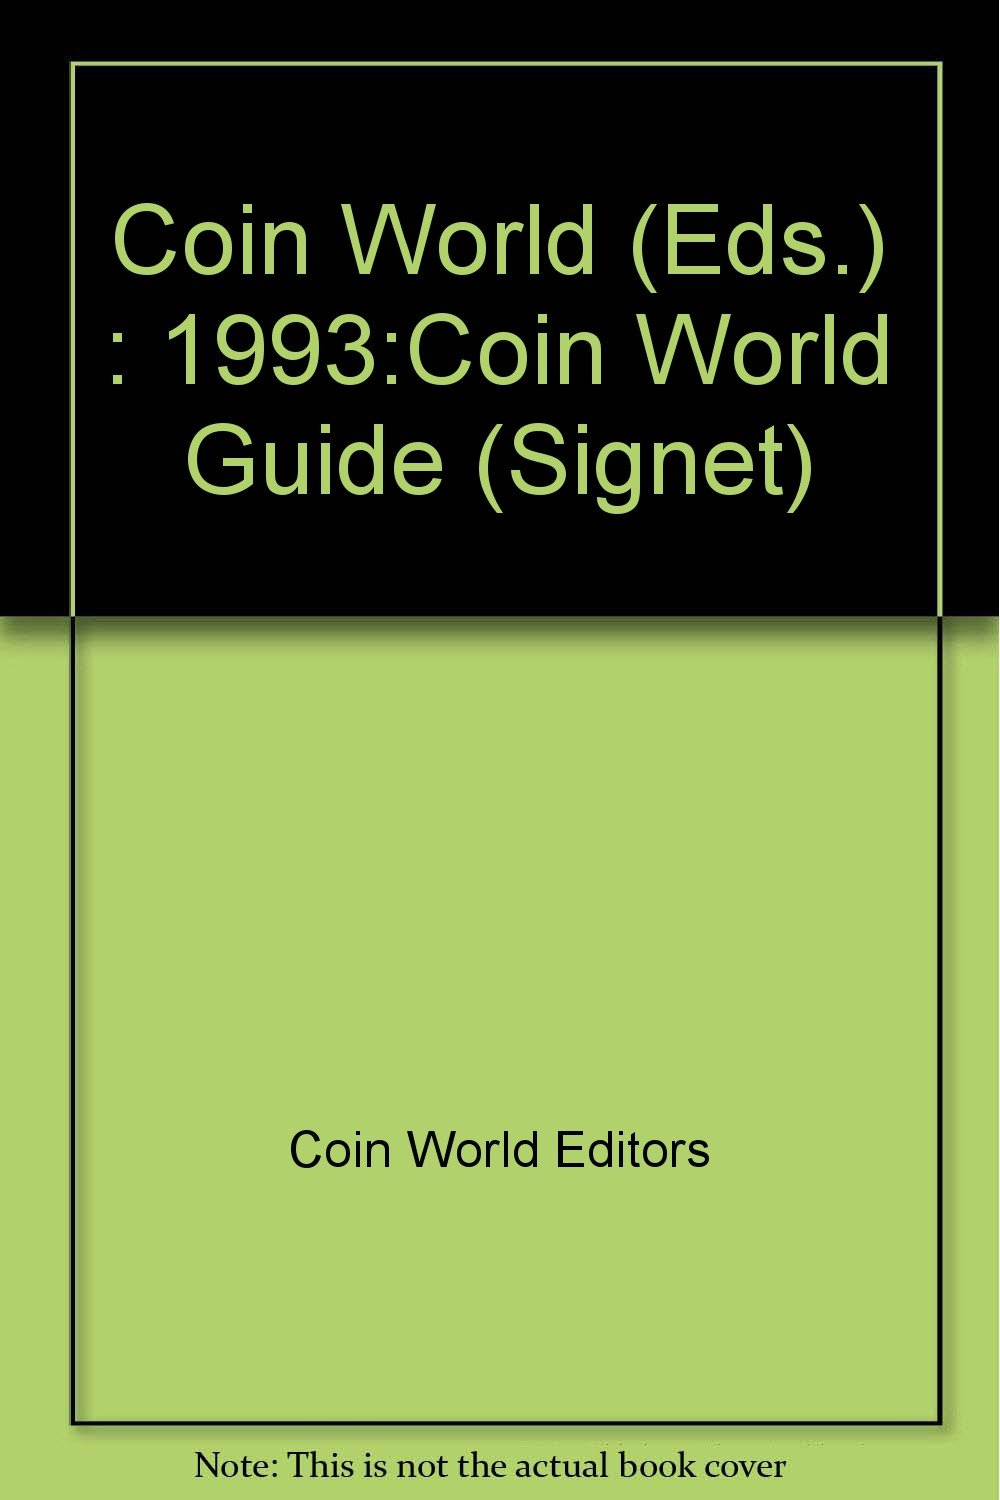 The Coin World 1993 Guide to U.S. Coins, Prices, and Value Trends